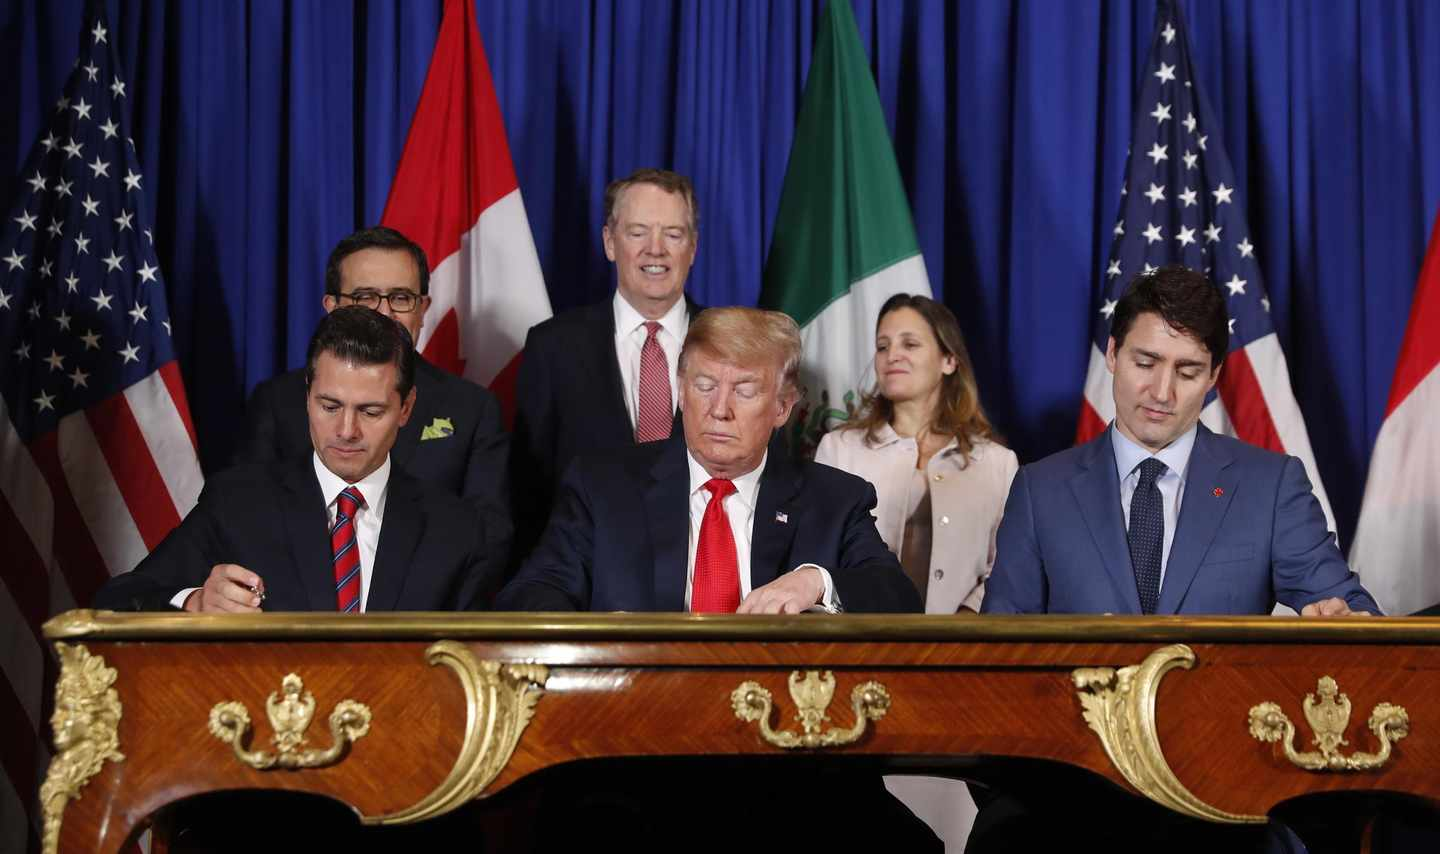 Possible Impeachment Upshot? A Bipartisan Trade Deal